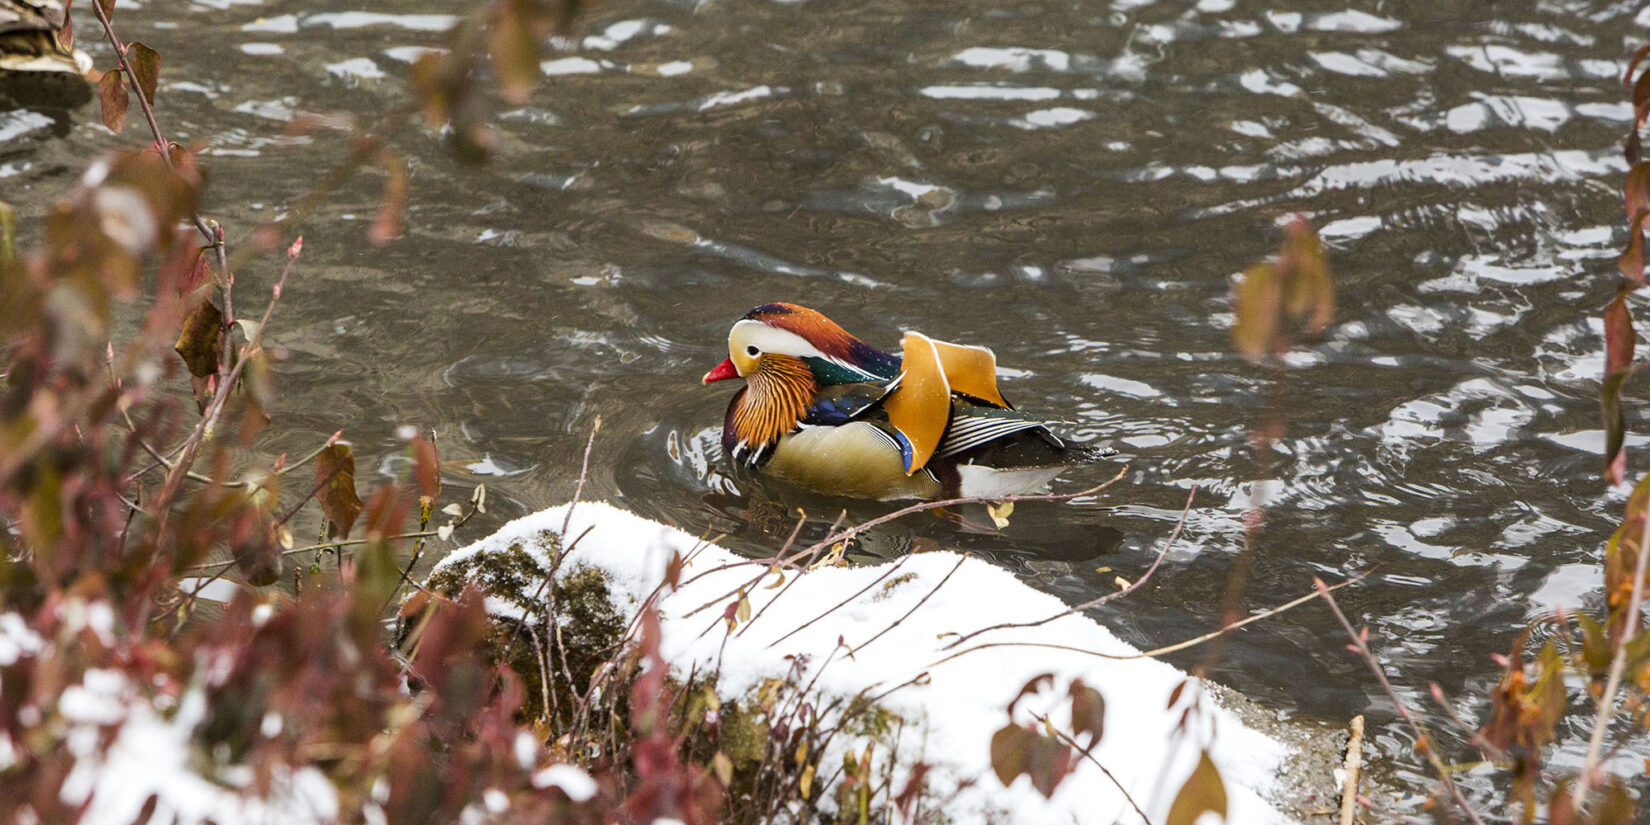 The unusual feathers of the mandarin duck offset by snow-dusted rocks and brown leaves in the foreground